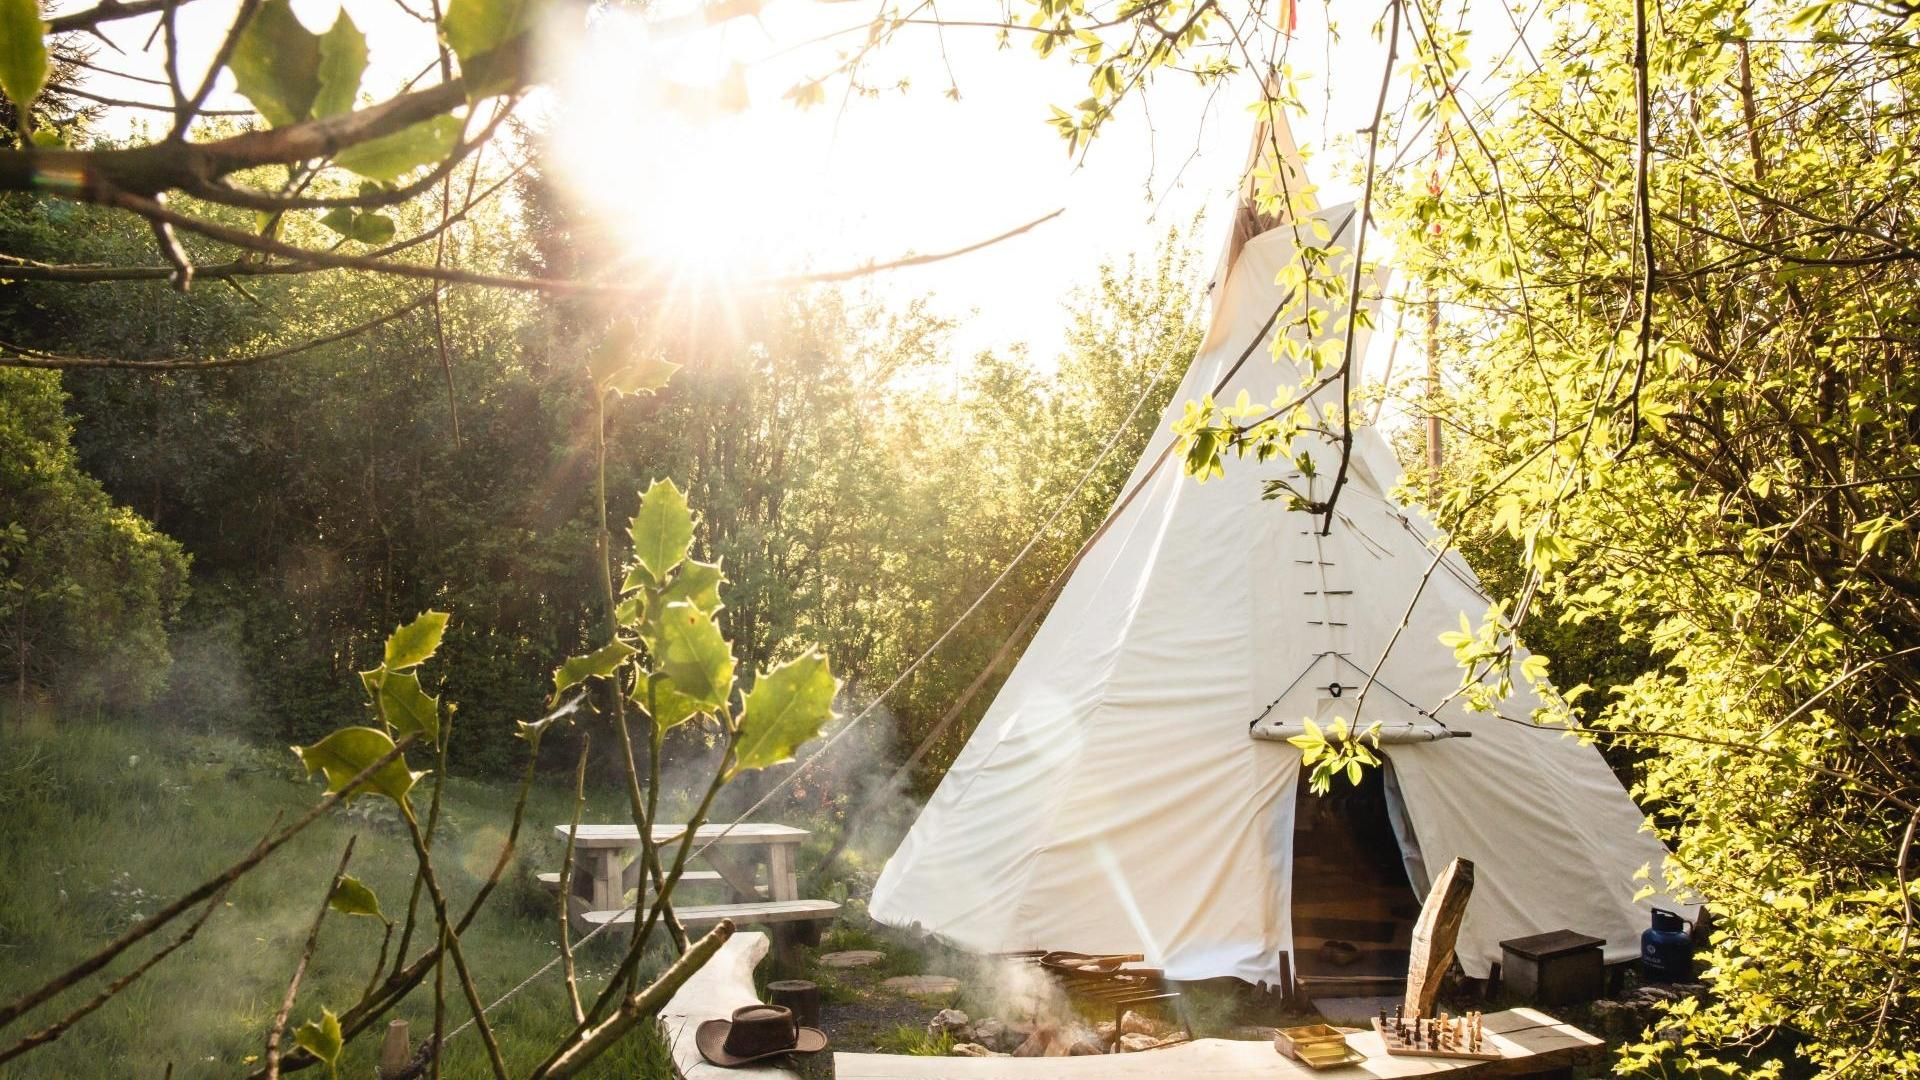 1 Bedroom Glamping/Tipi in Wales, United Kingdom